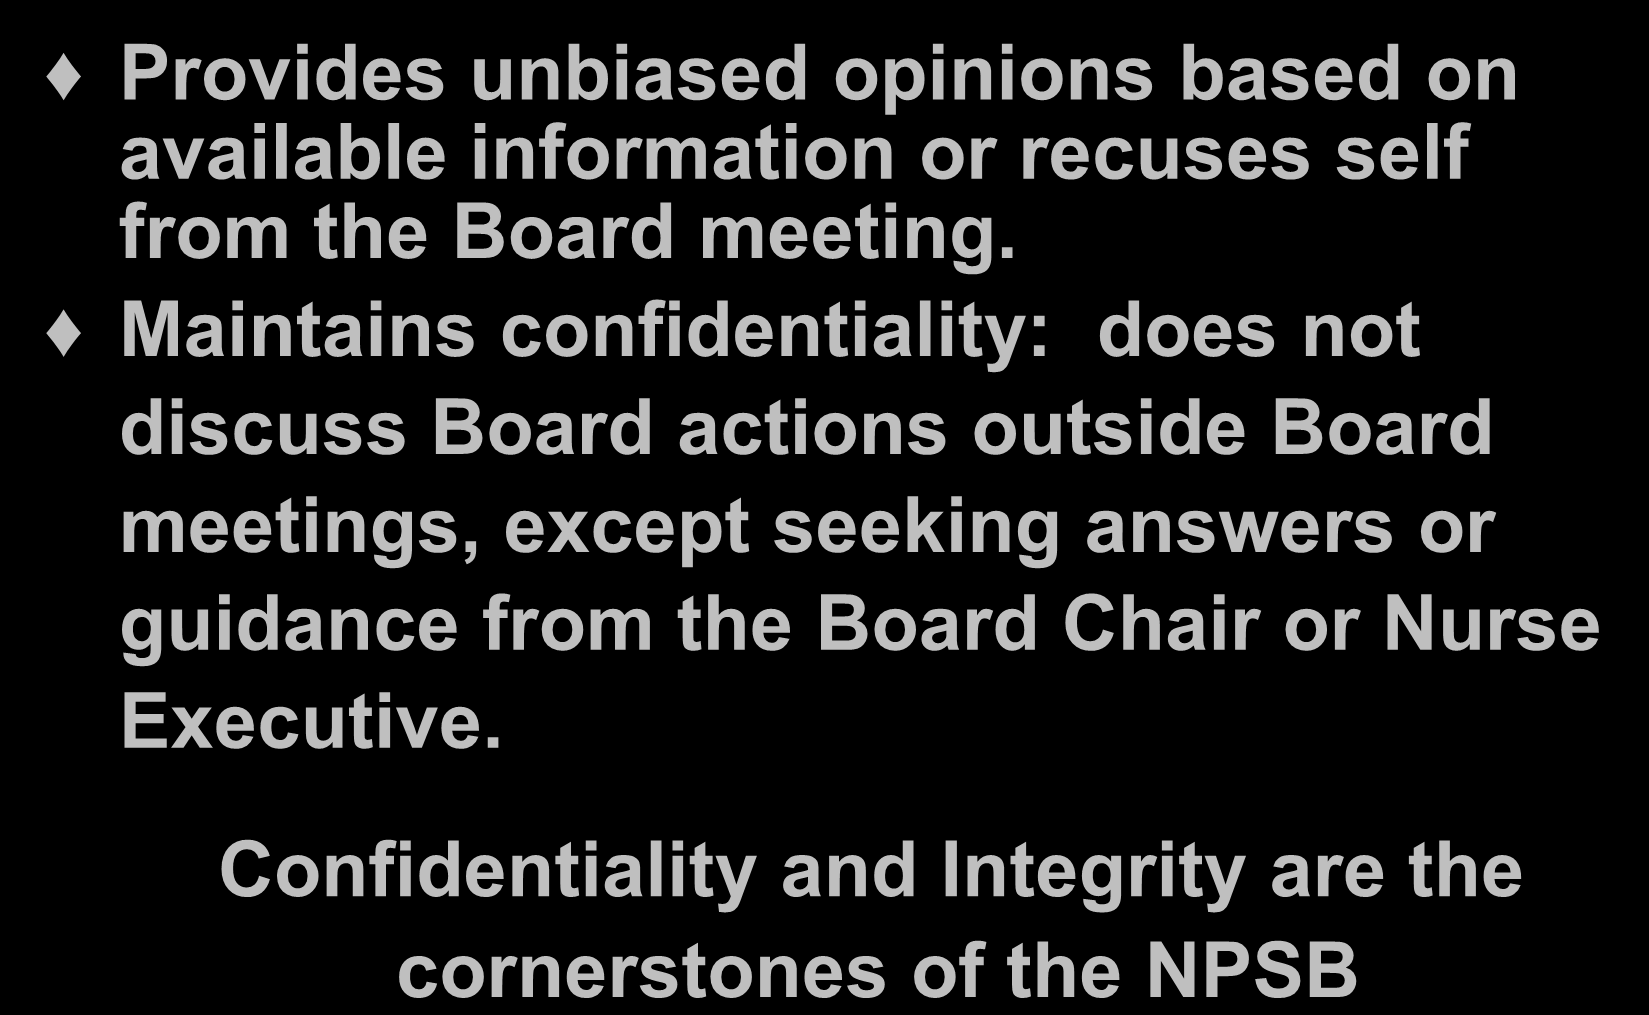 Responsibilities / NPSB Members Provides unbiased opinions based on available information or recuses self from the Board meeting.